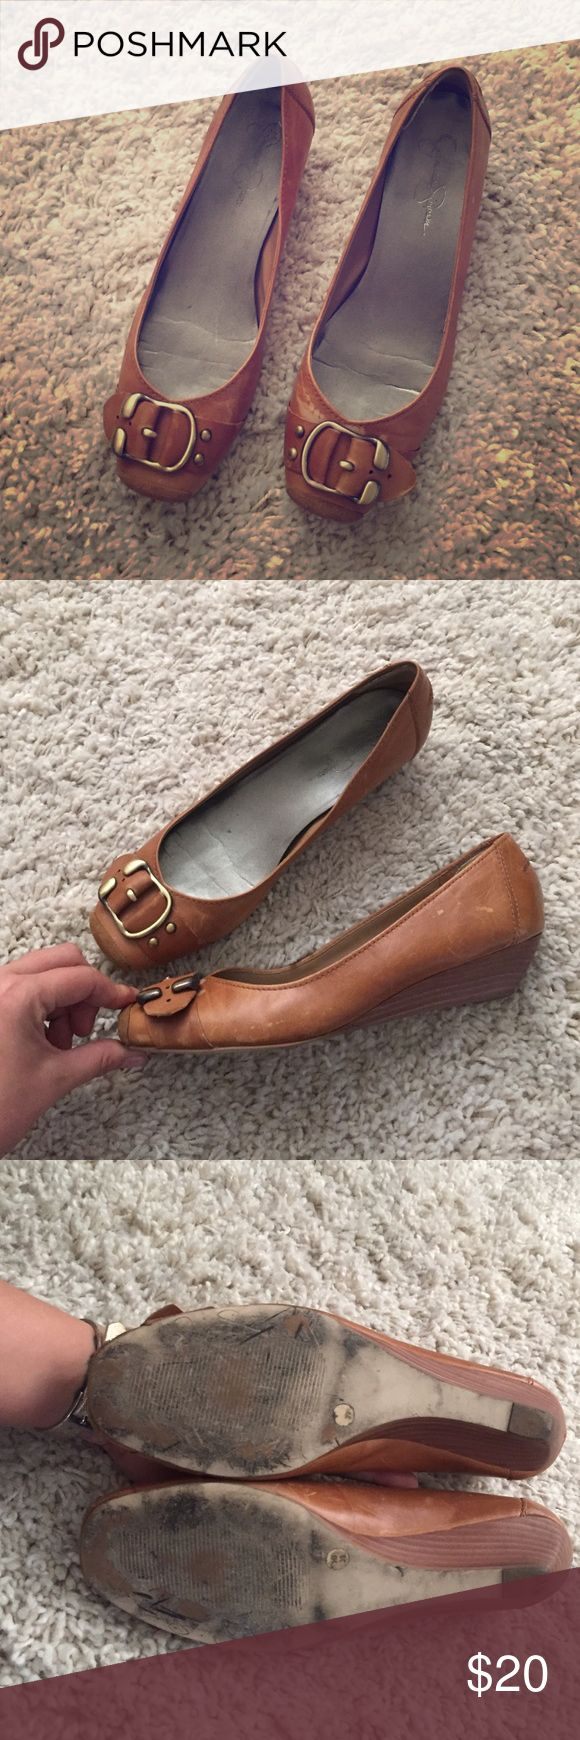 Cognac Jessica Simpson Flats Cognac genuine leather flats with buckle detail. Jessica Simpson Shoes Flats & Loafers